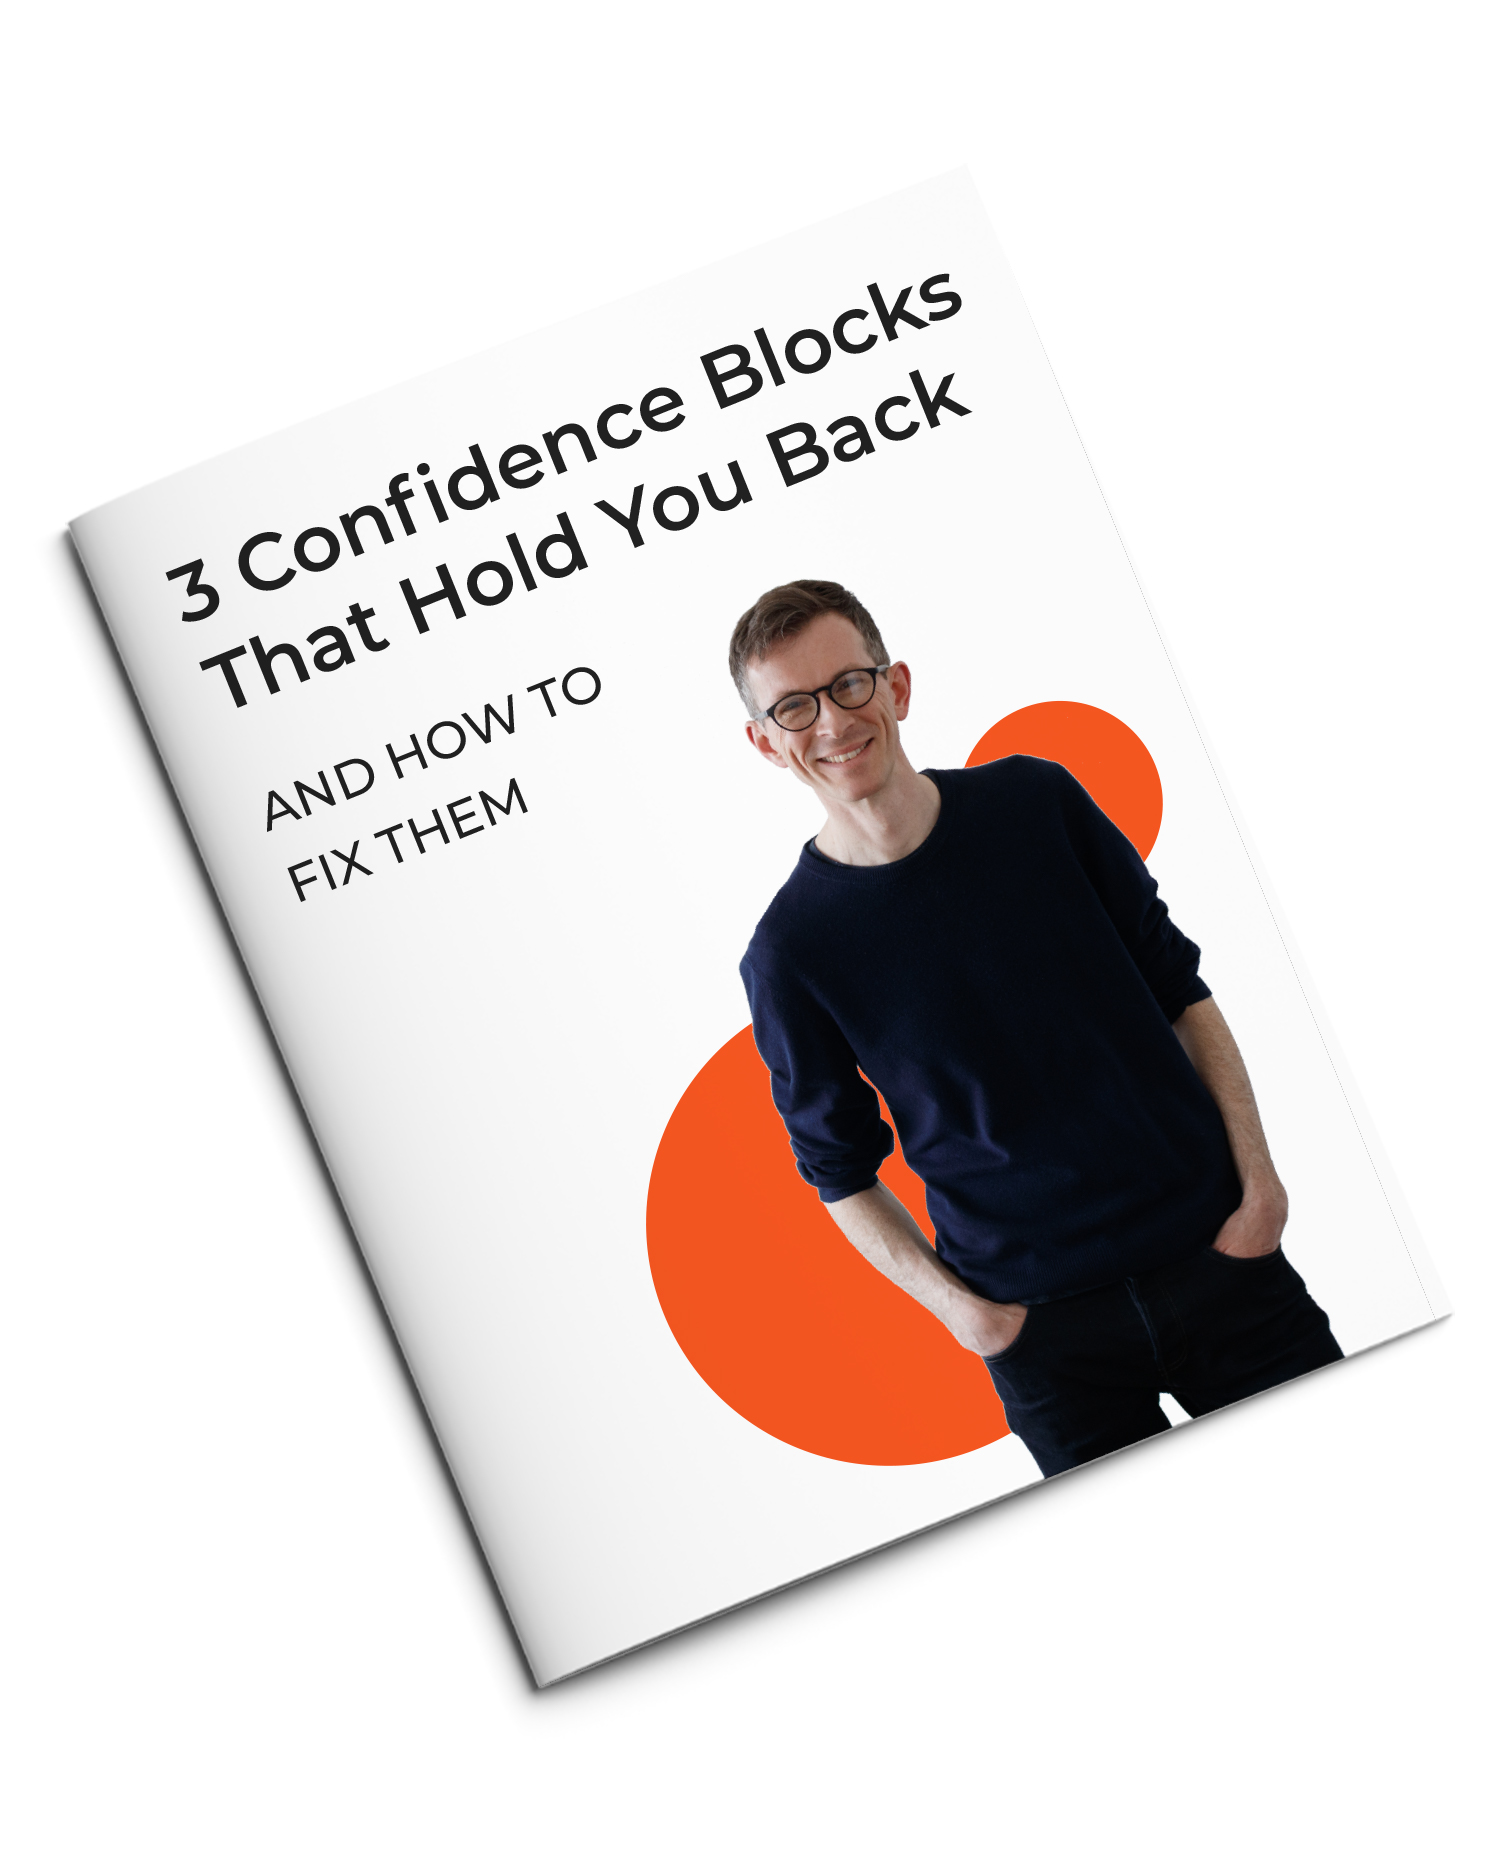 3 confidence blocks and how to fix them guide.